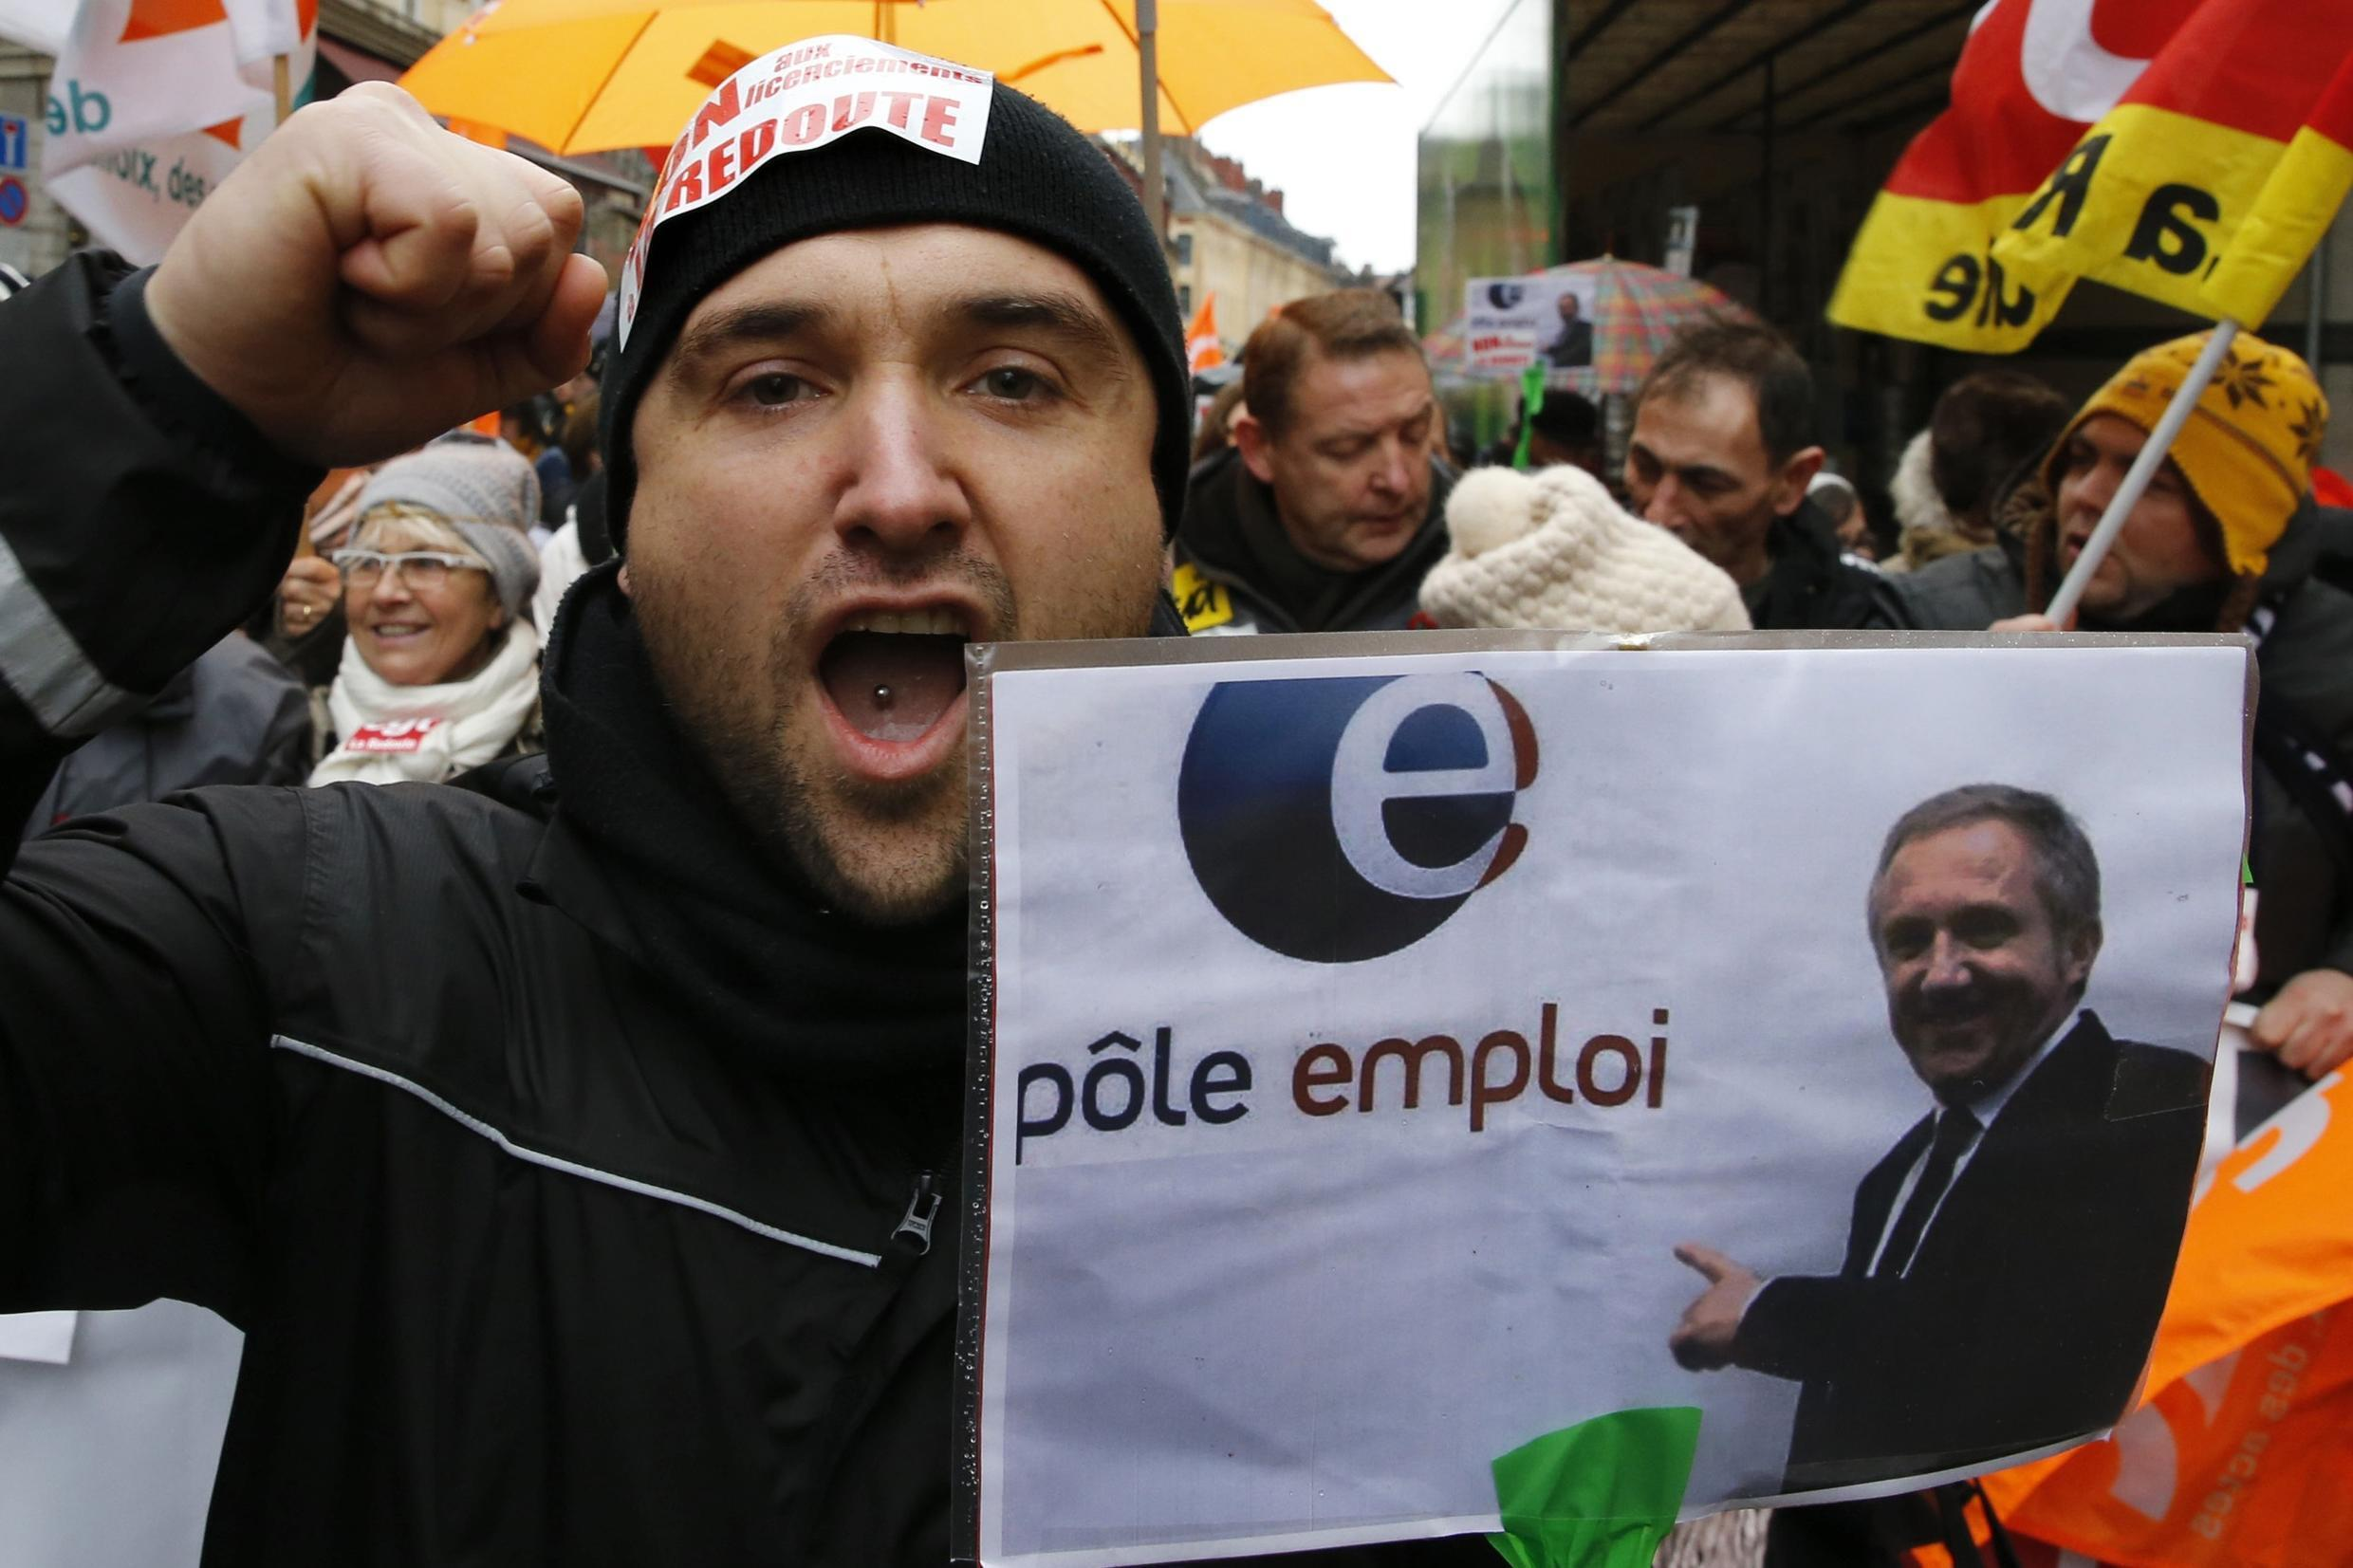 Employees of mail order clothing company La Redoute demonstrate against job losses in Lille in January